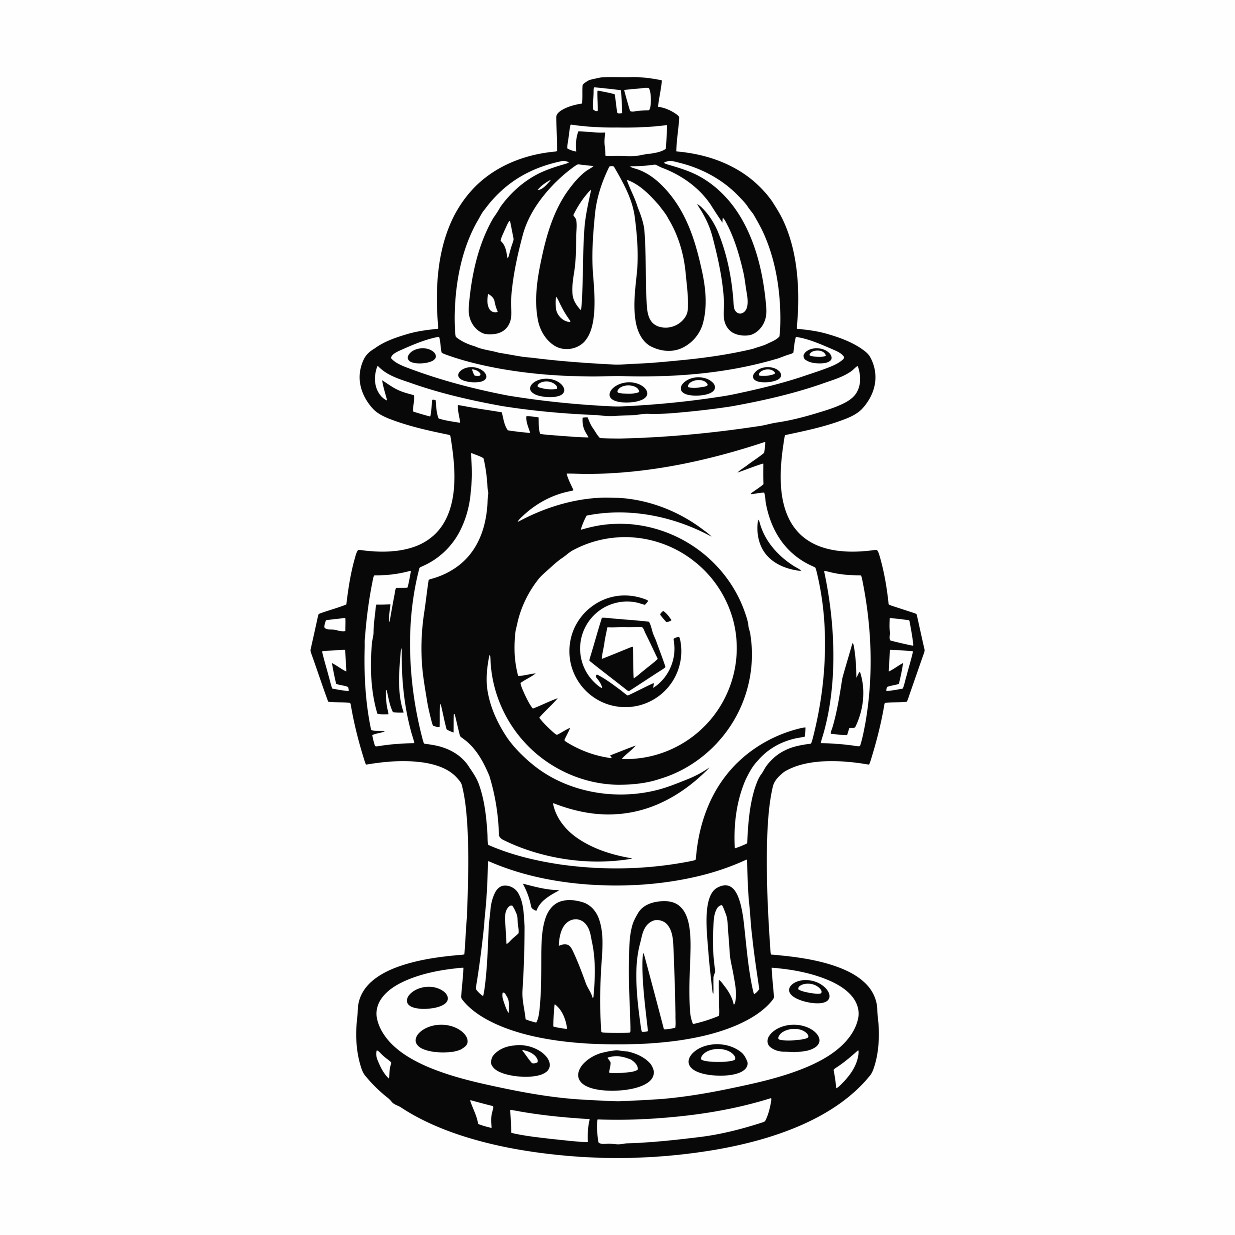 1235x1235 Fire Hydrant Printable Image Illustration Sketch For Fire Hydrant